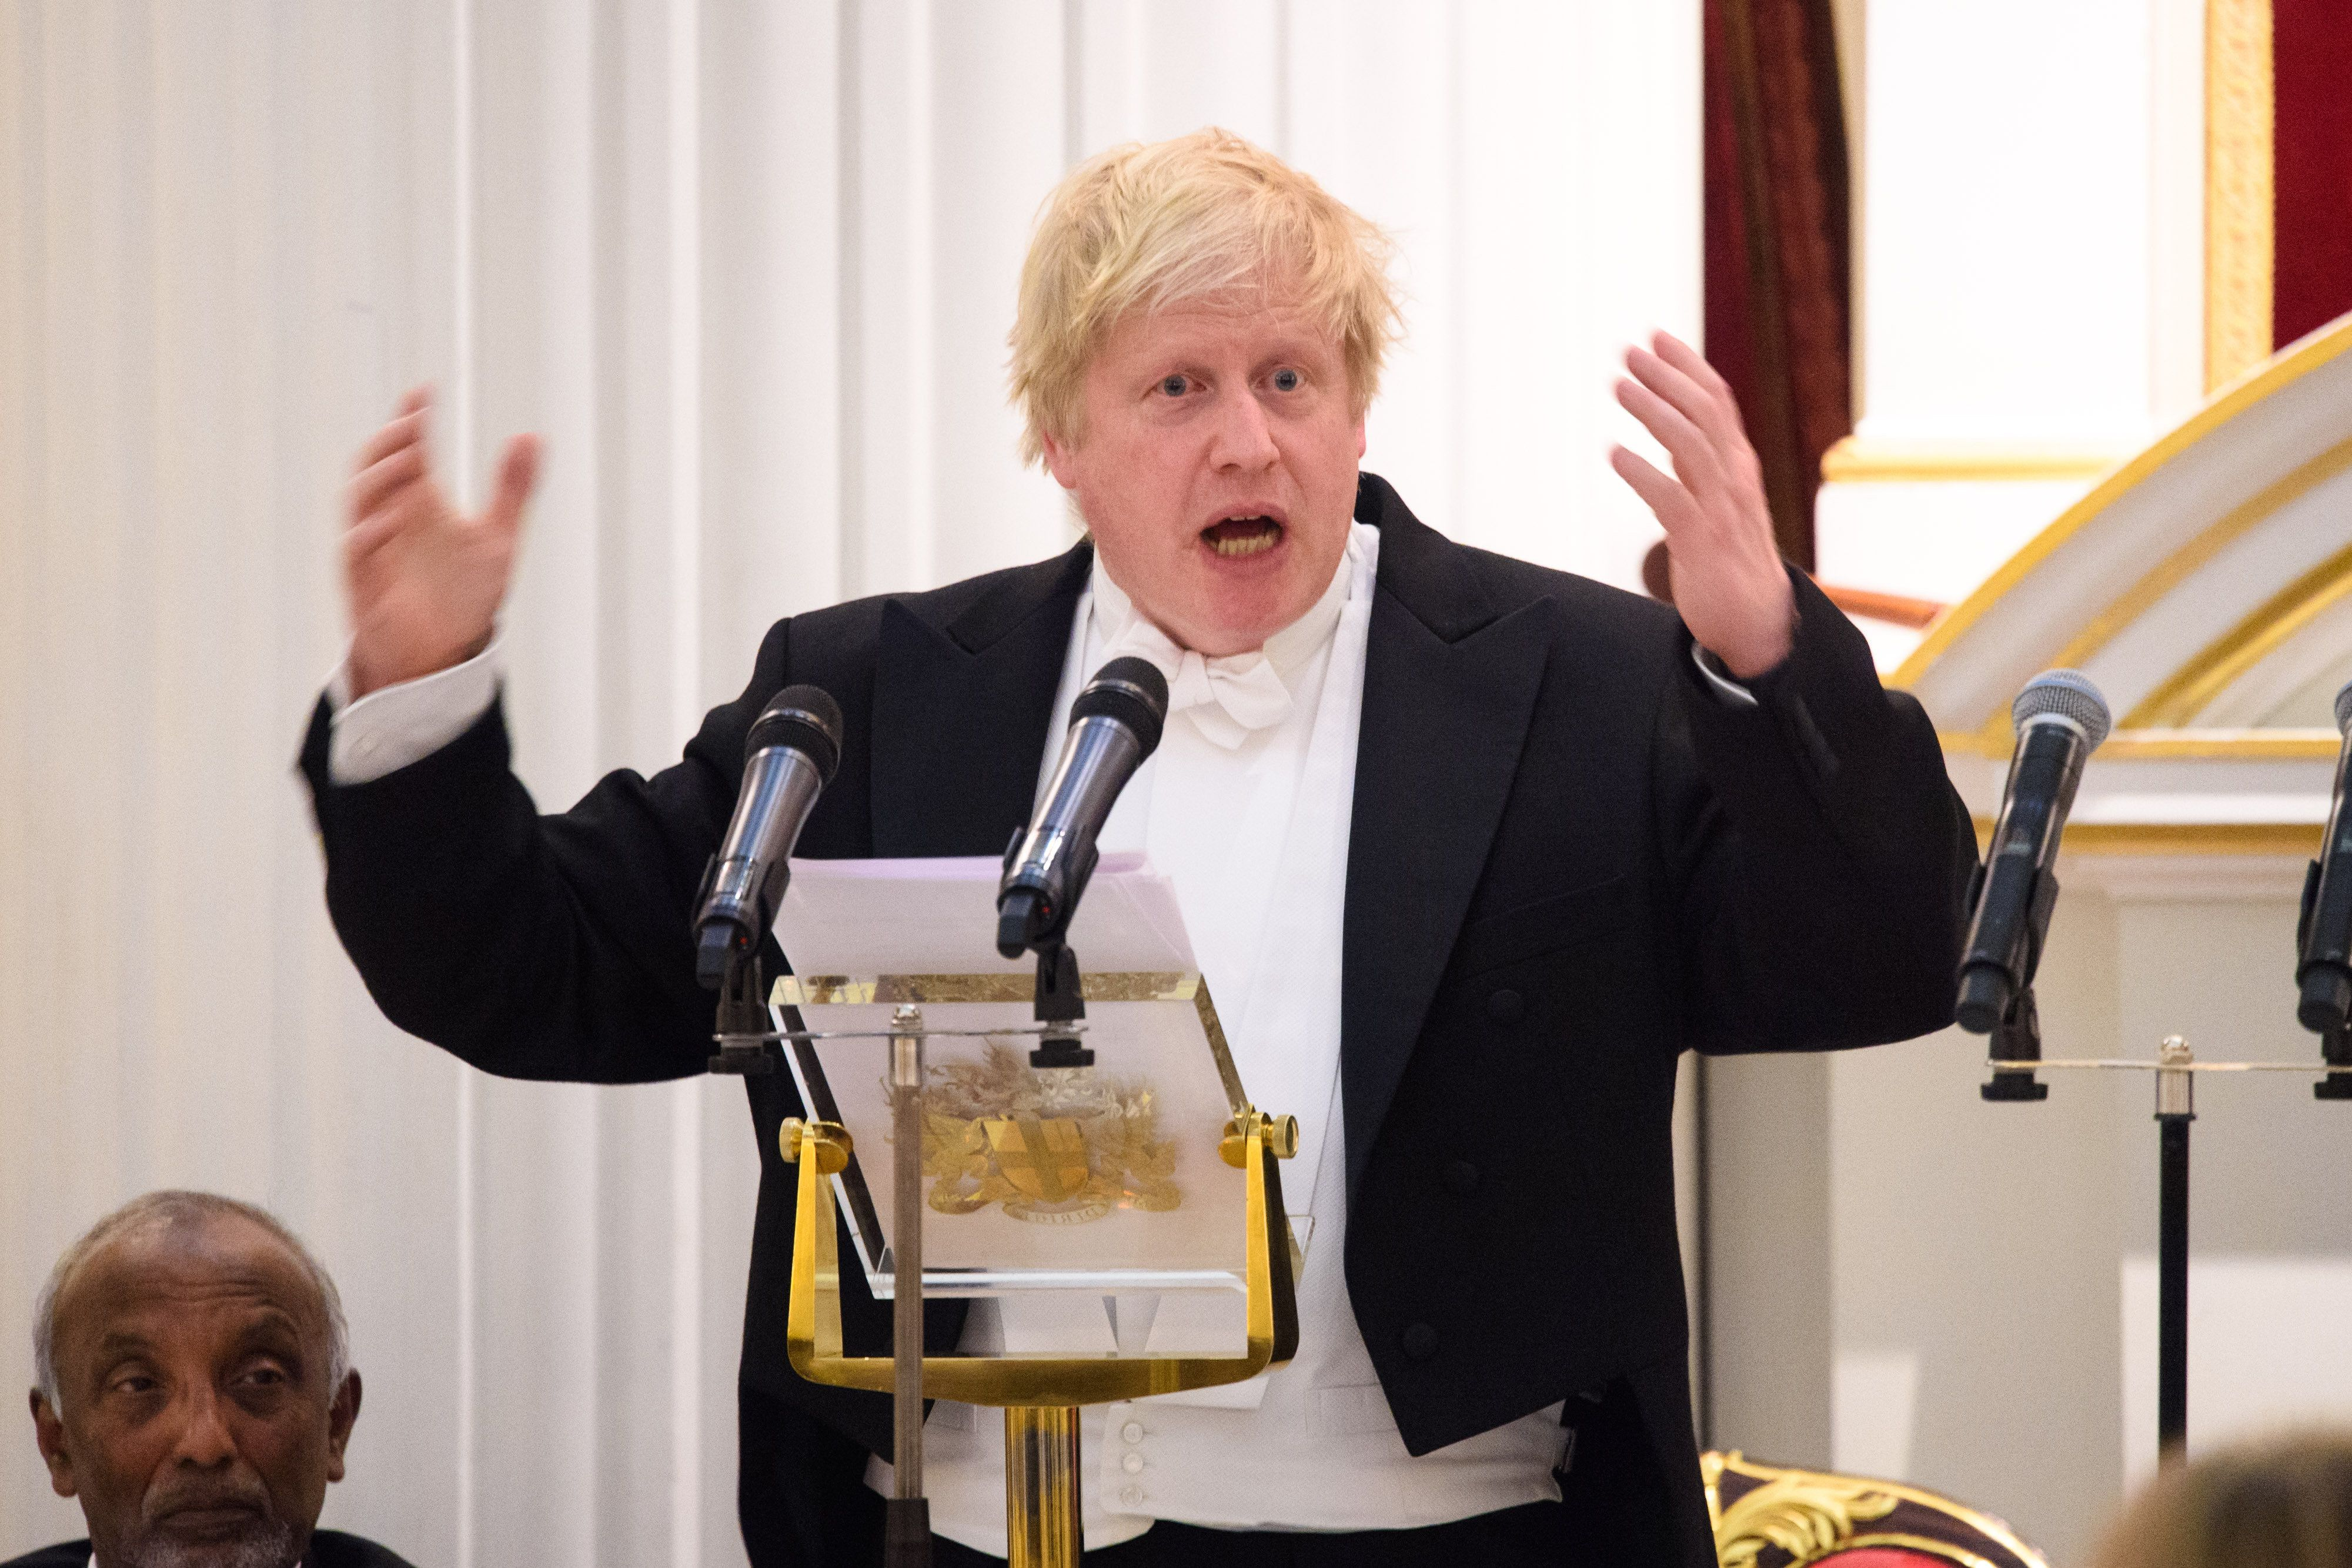 Boris Johnson Was Paid £95,000 For A Single Two-Hour Speech, Records